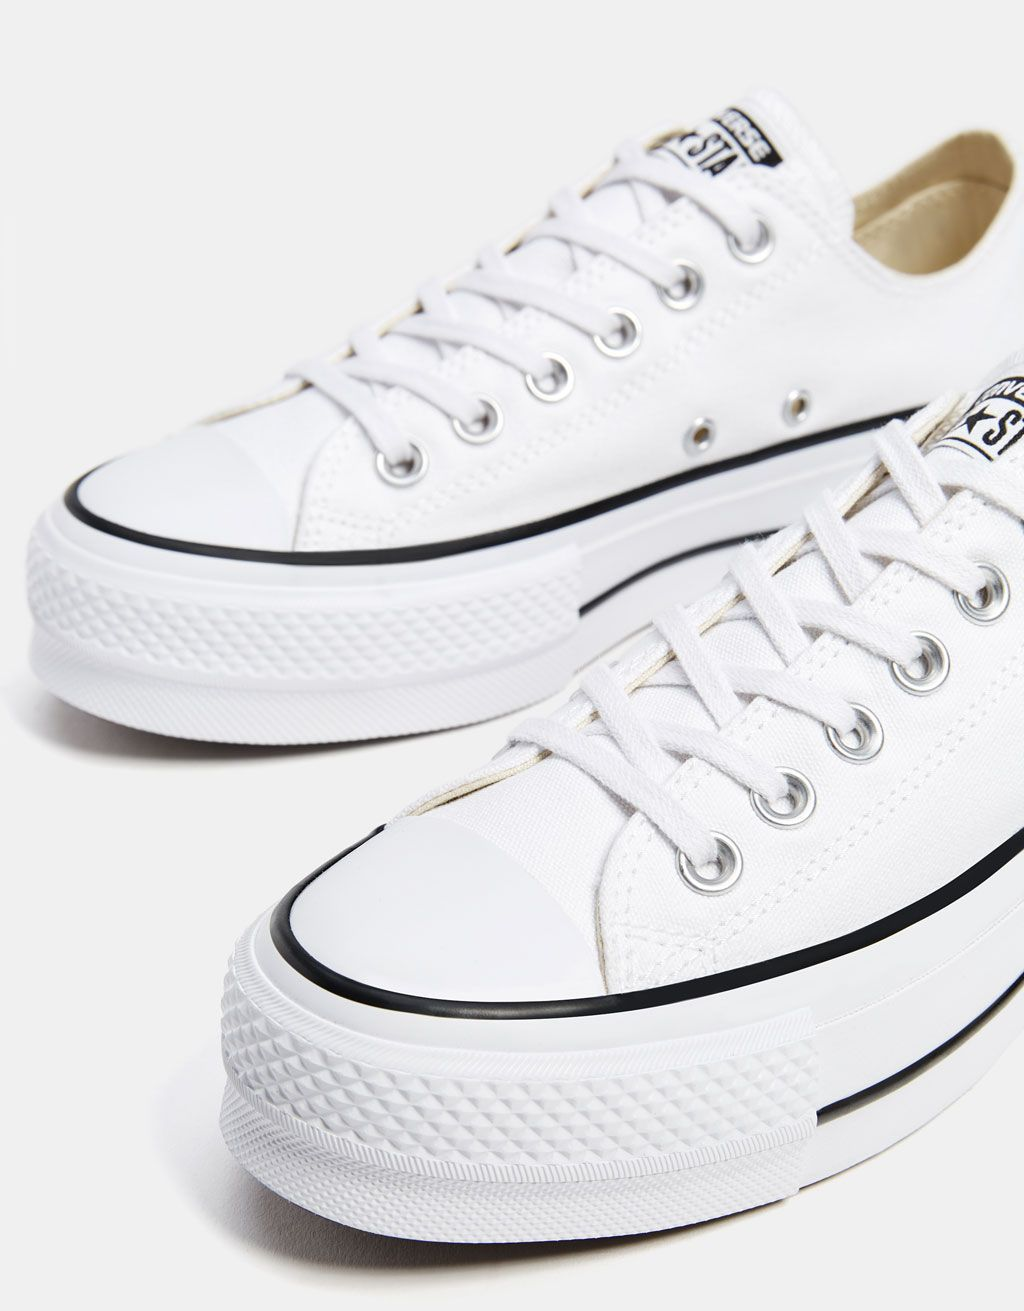 360fbf94f42 CONVERSE CHUCK TAYLOR ALL STAR platform sneakers - Bershka  fashion   product  converse  allstar  sneakers  trainers  white  canvas  zapatillas   lona ...